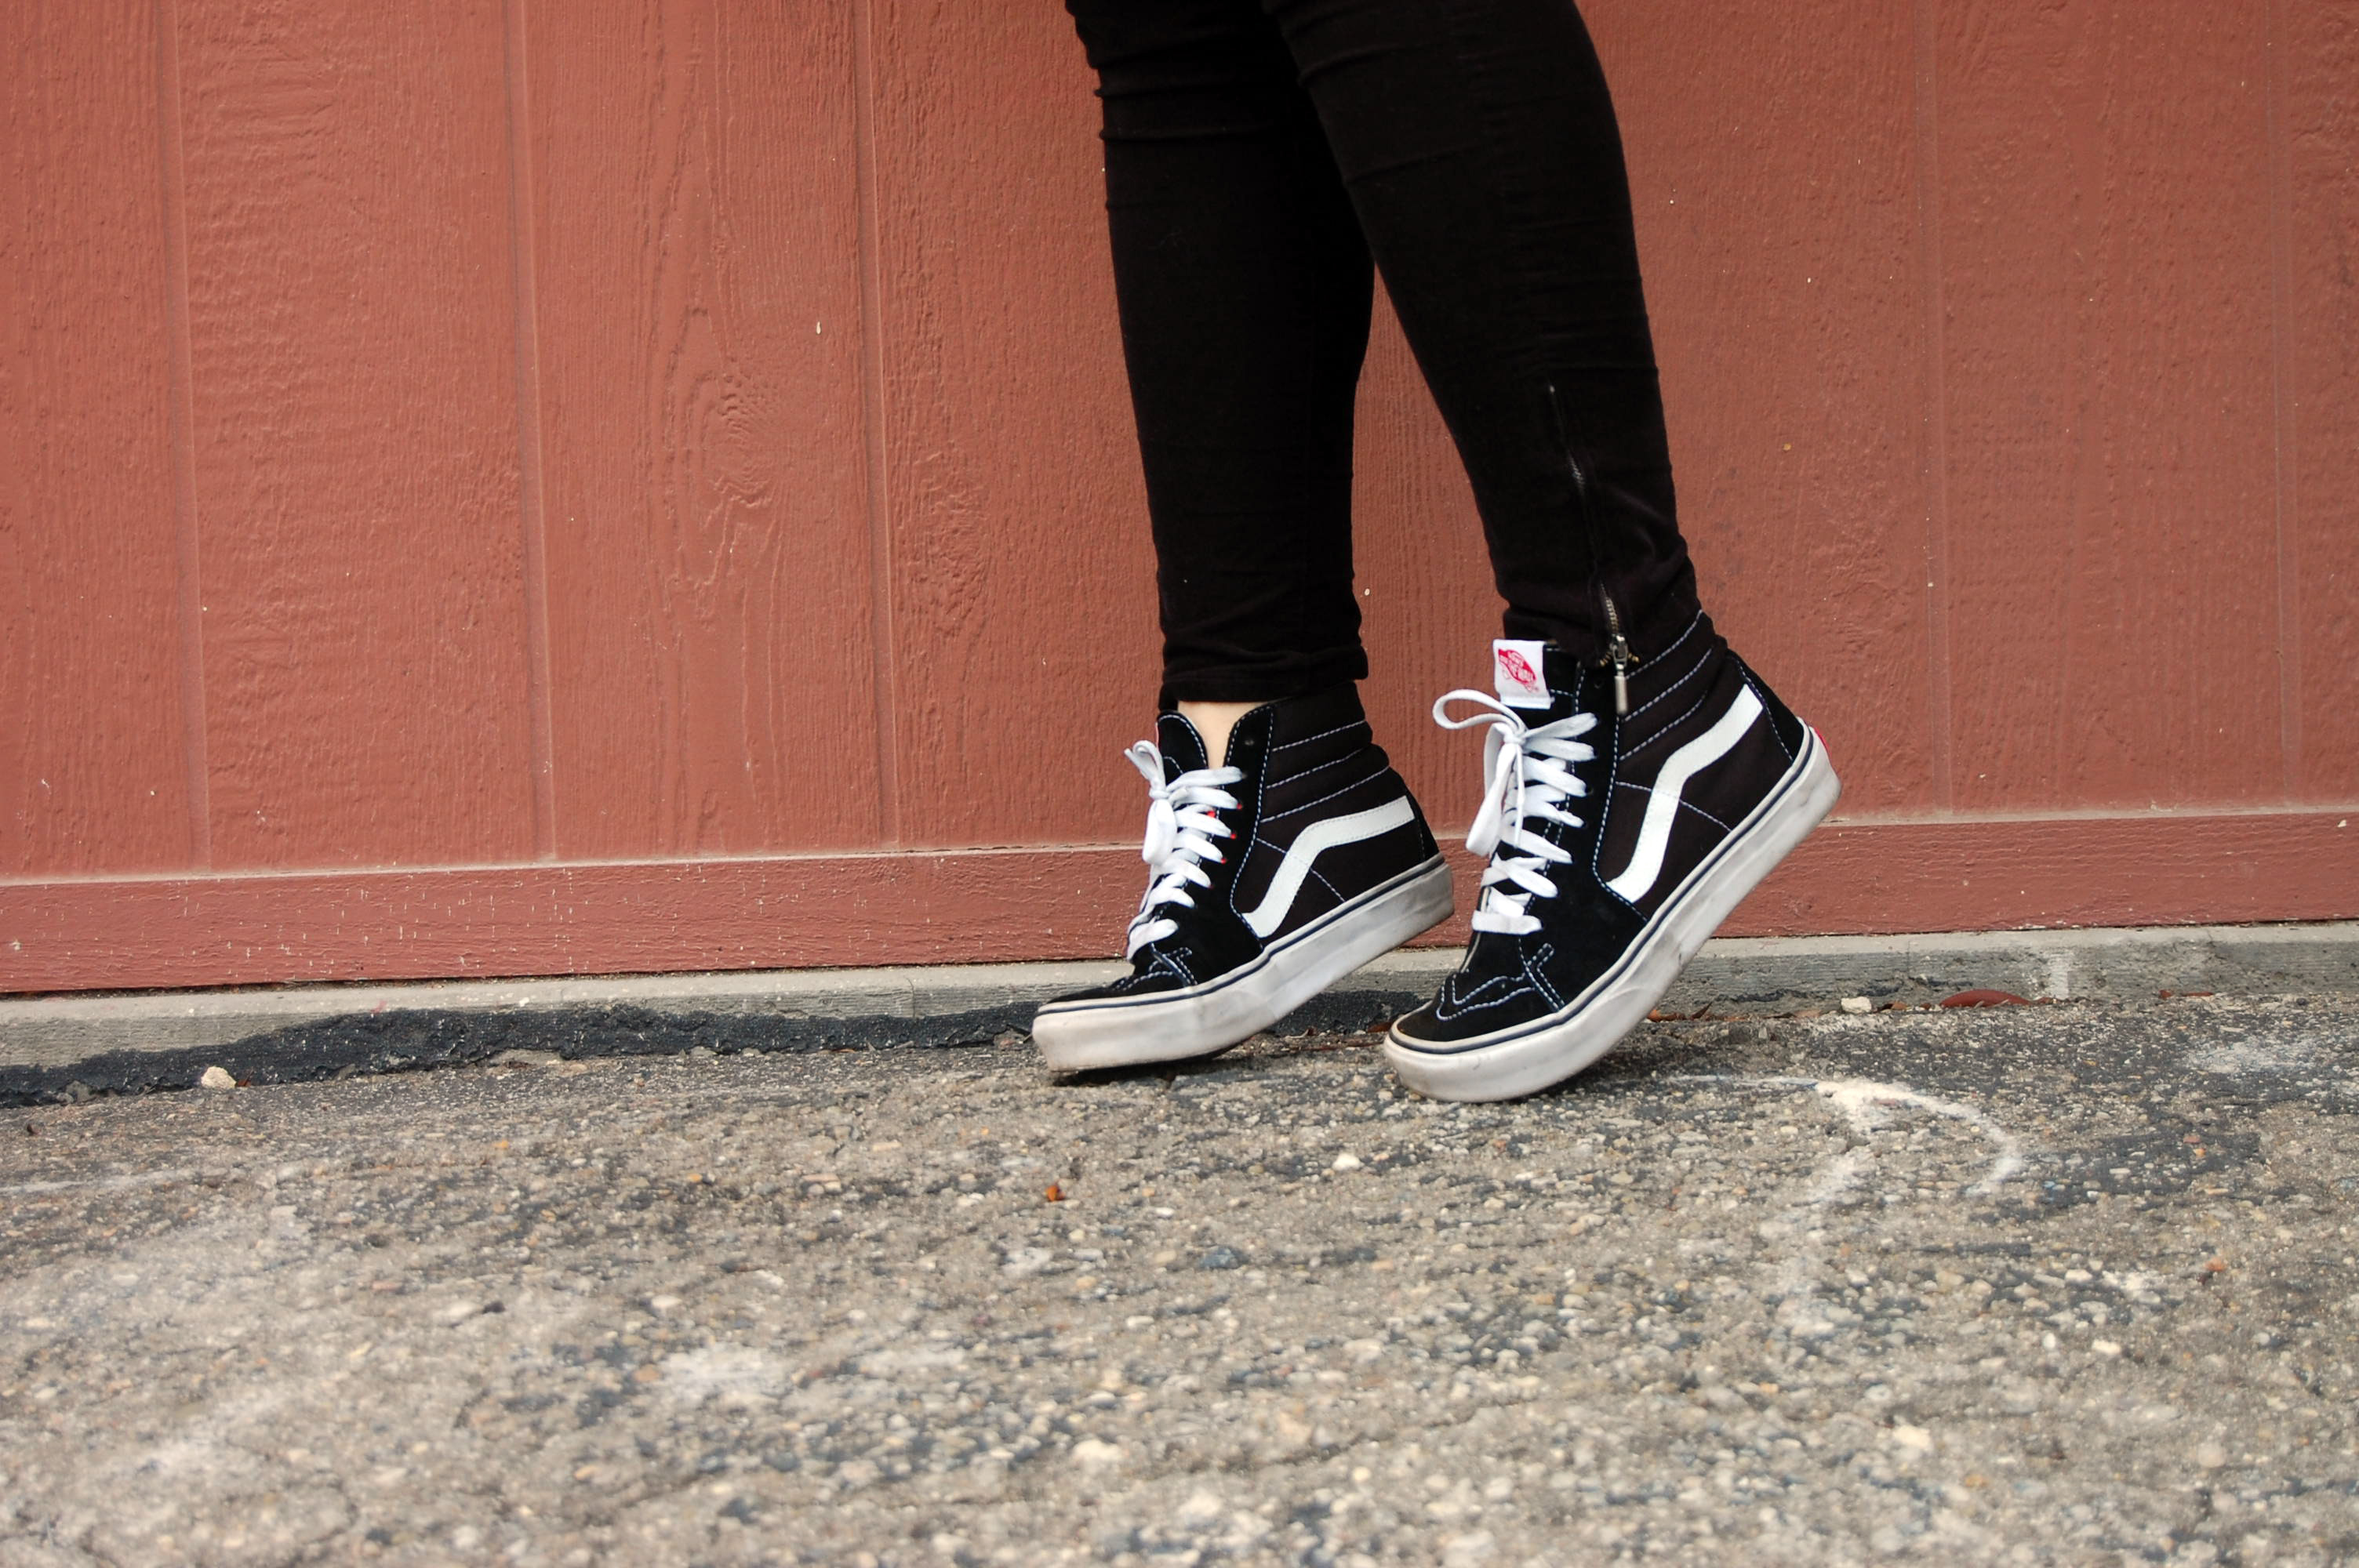 vans sk8 hi being worn